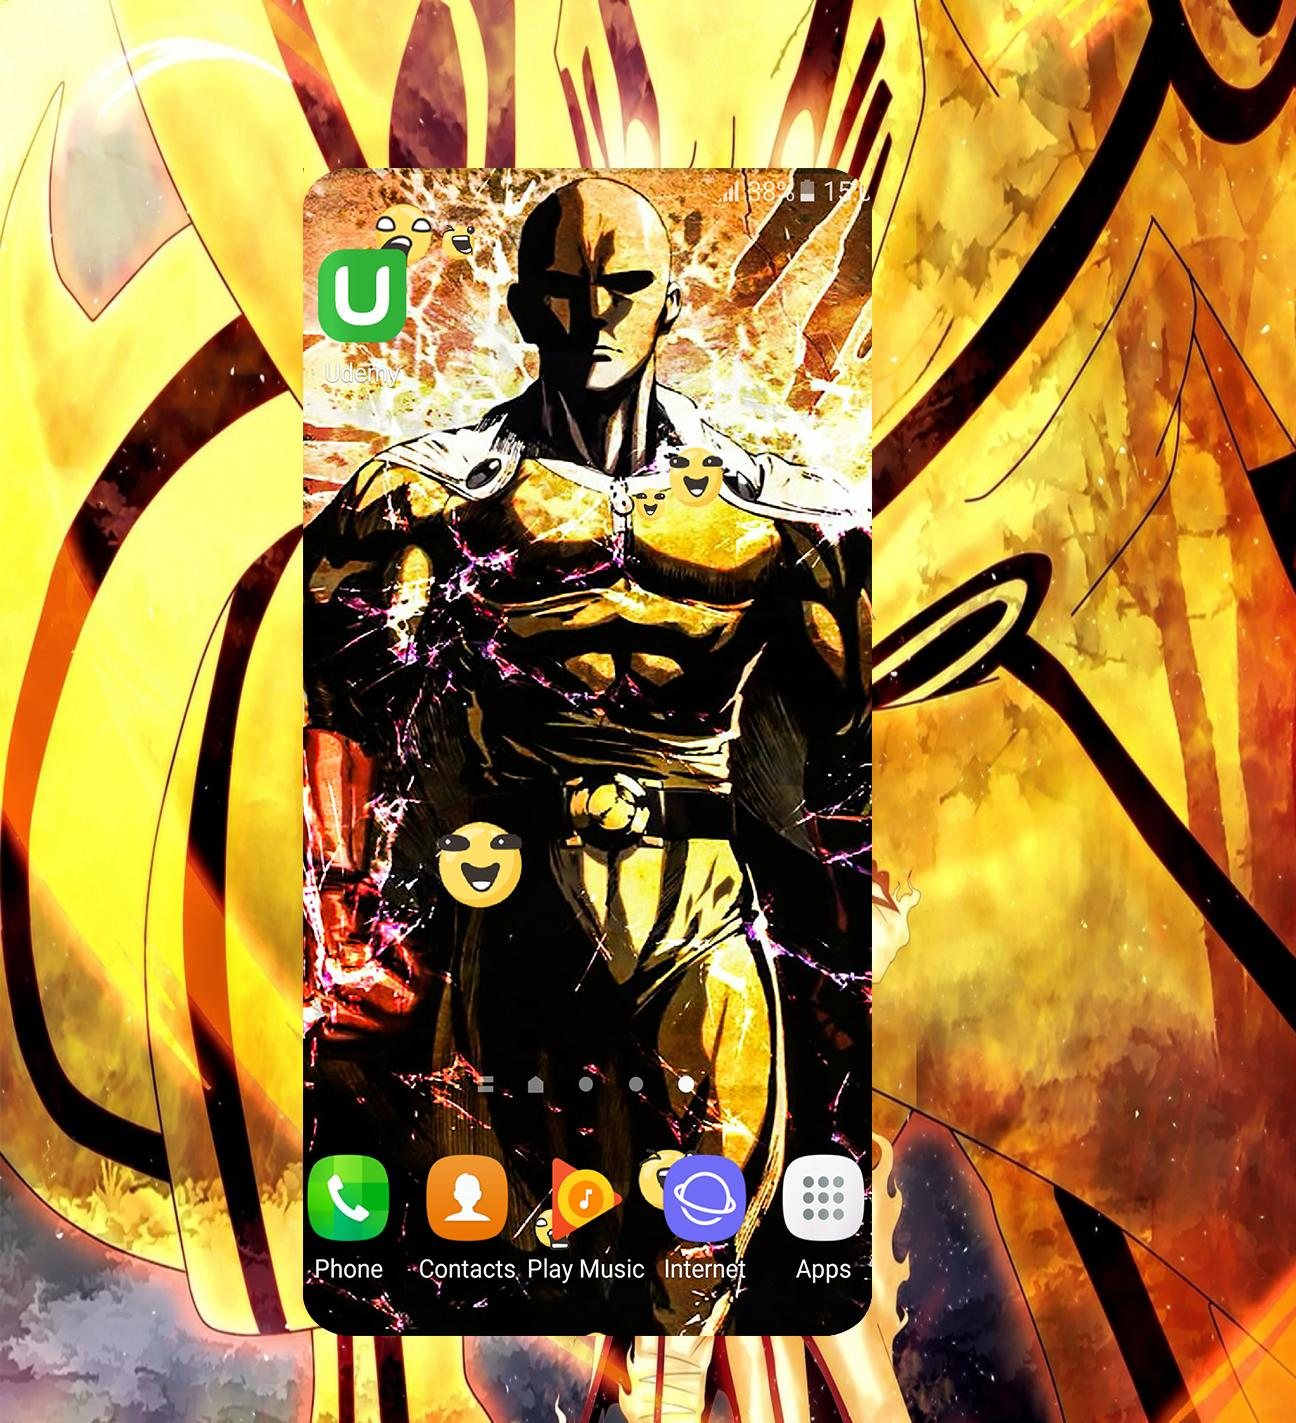 HD Wallpaper For E Punch Man Para Android APK Baixar